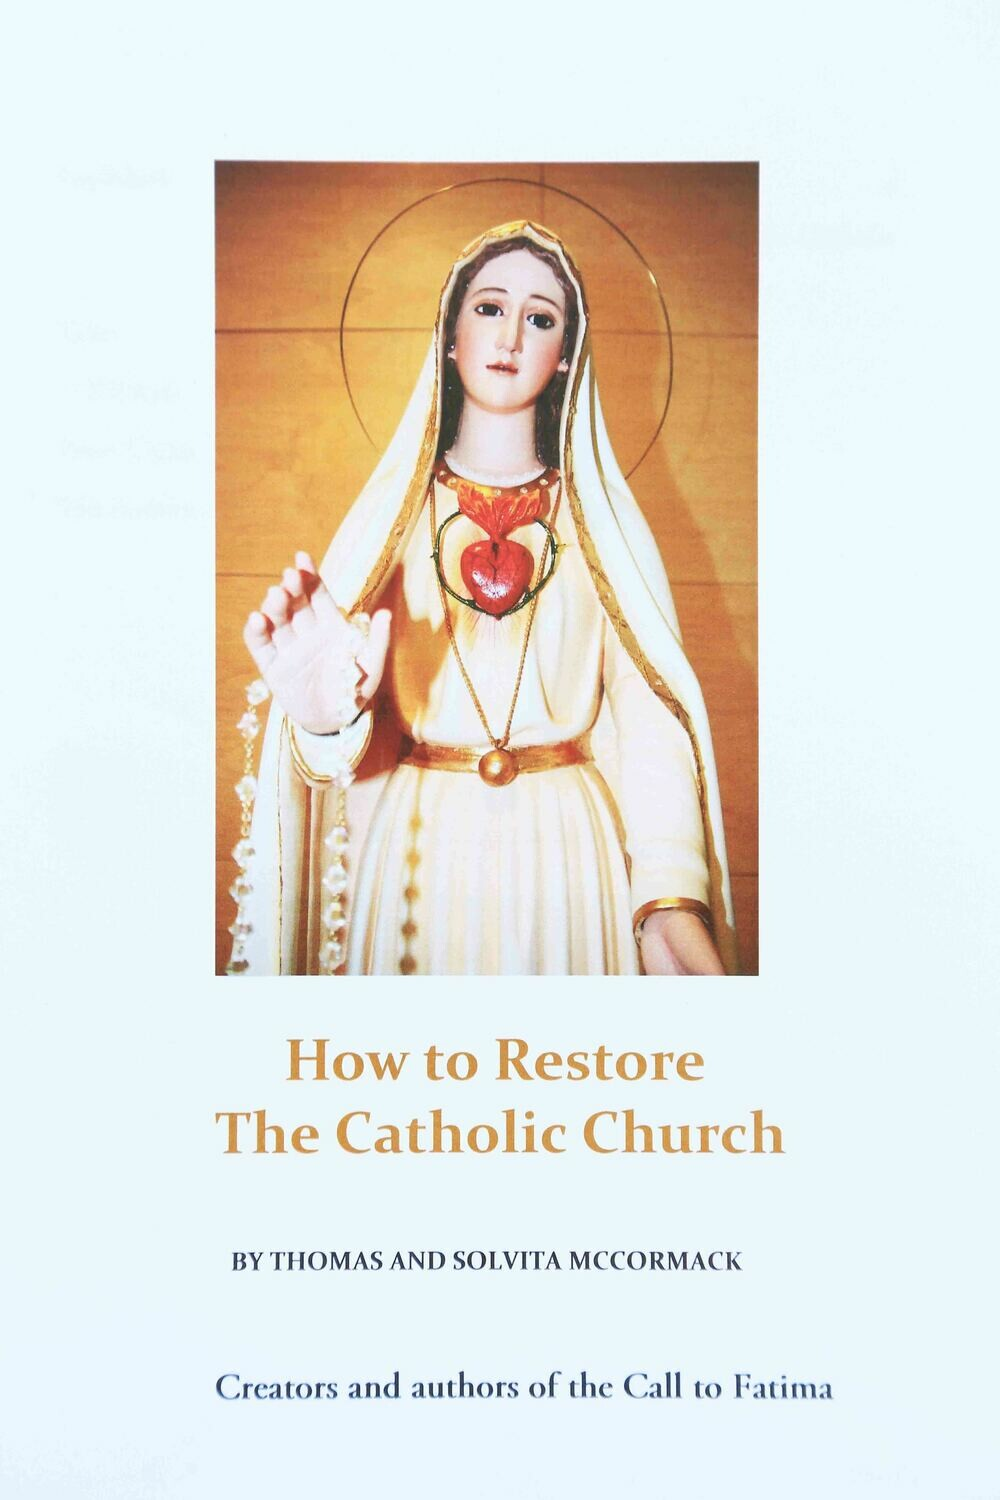 Ebook How to Restore The Catholic Church